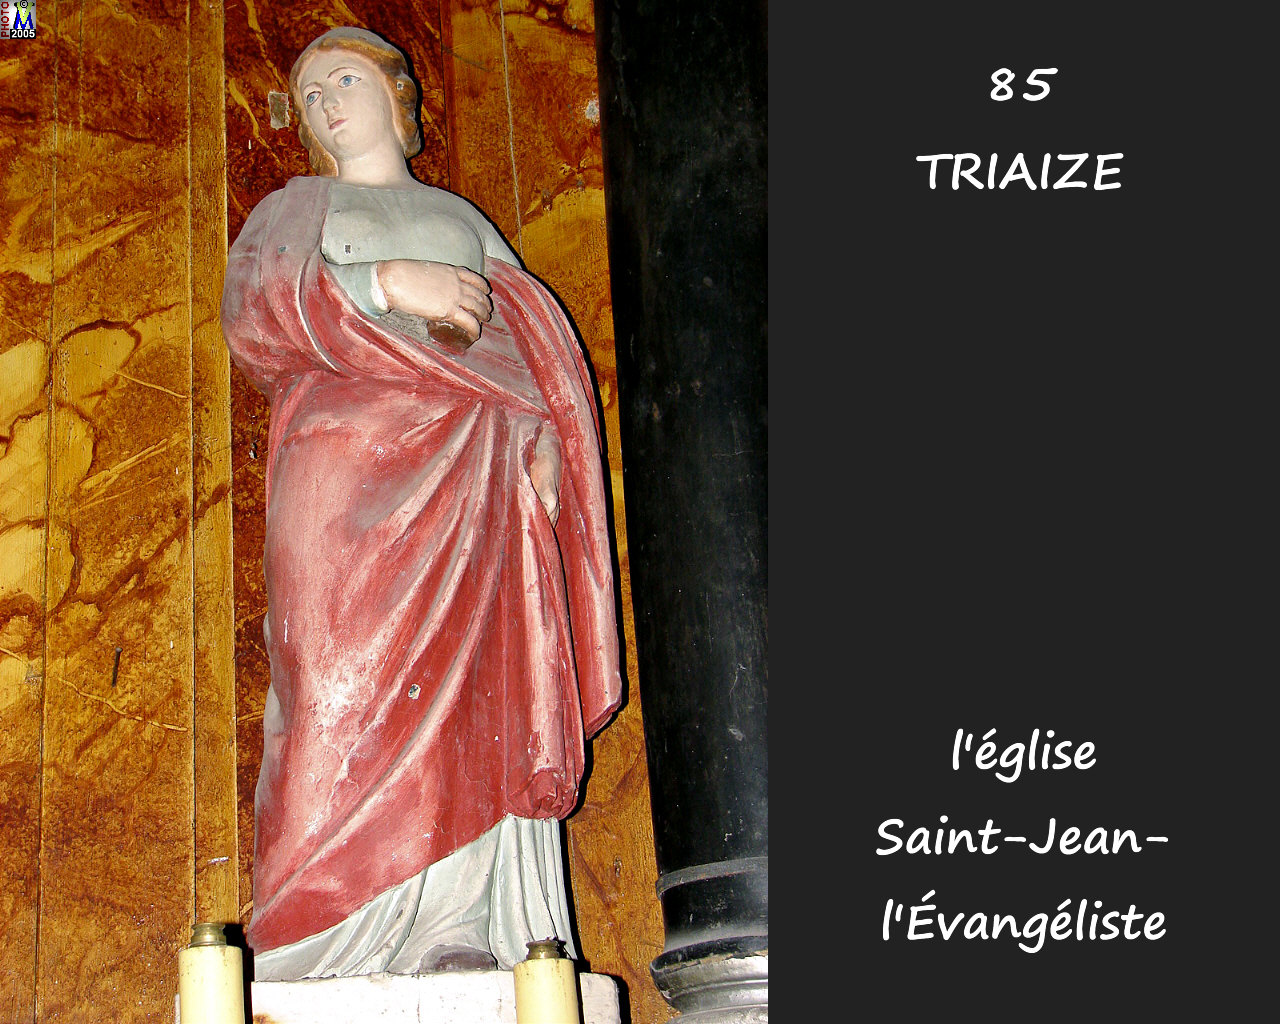 85TRIAIZE_eglise_212.jpg